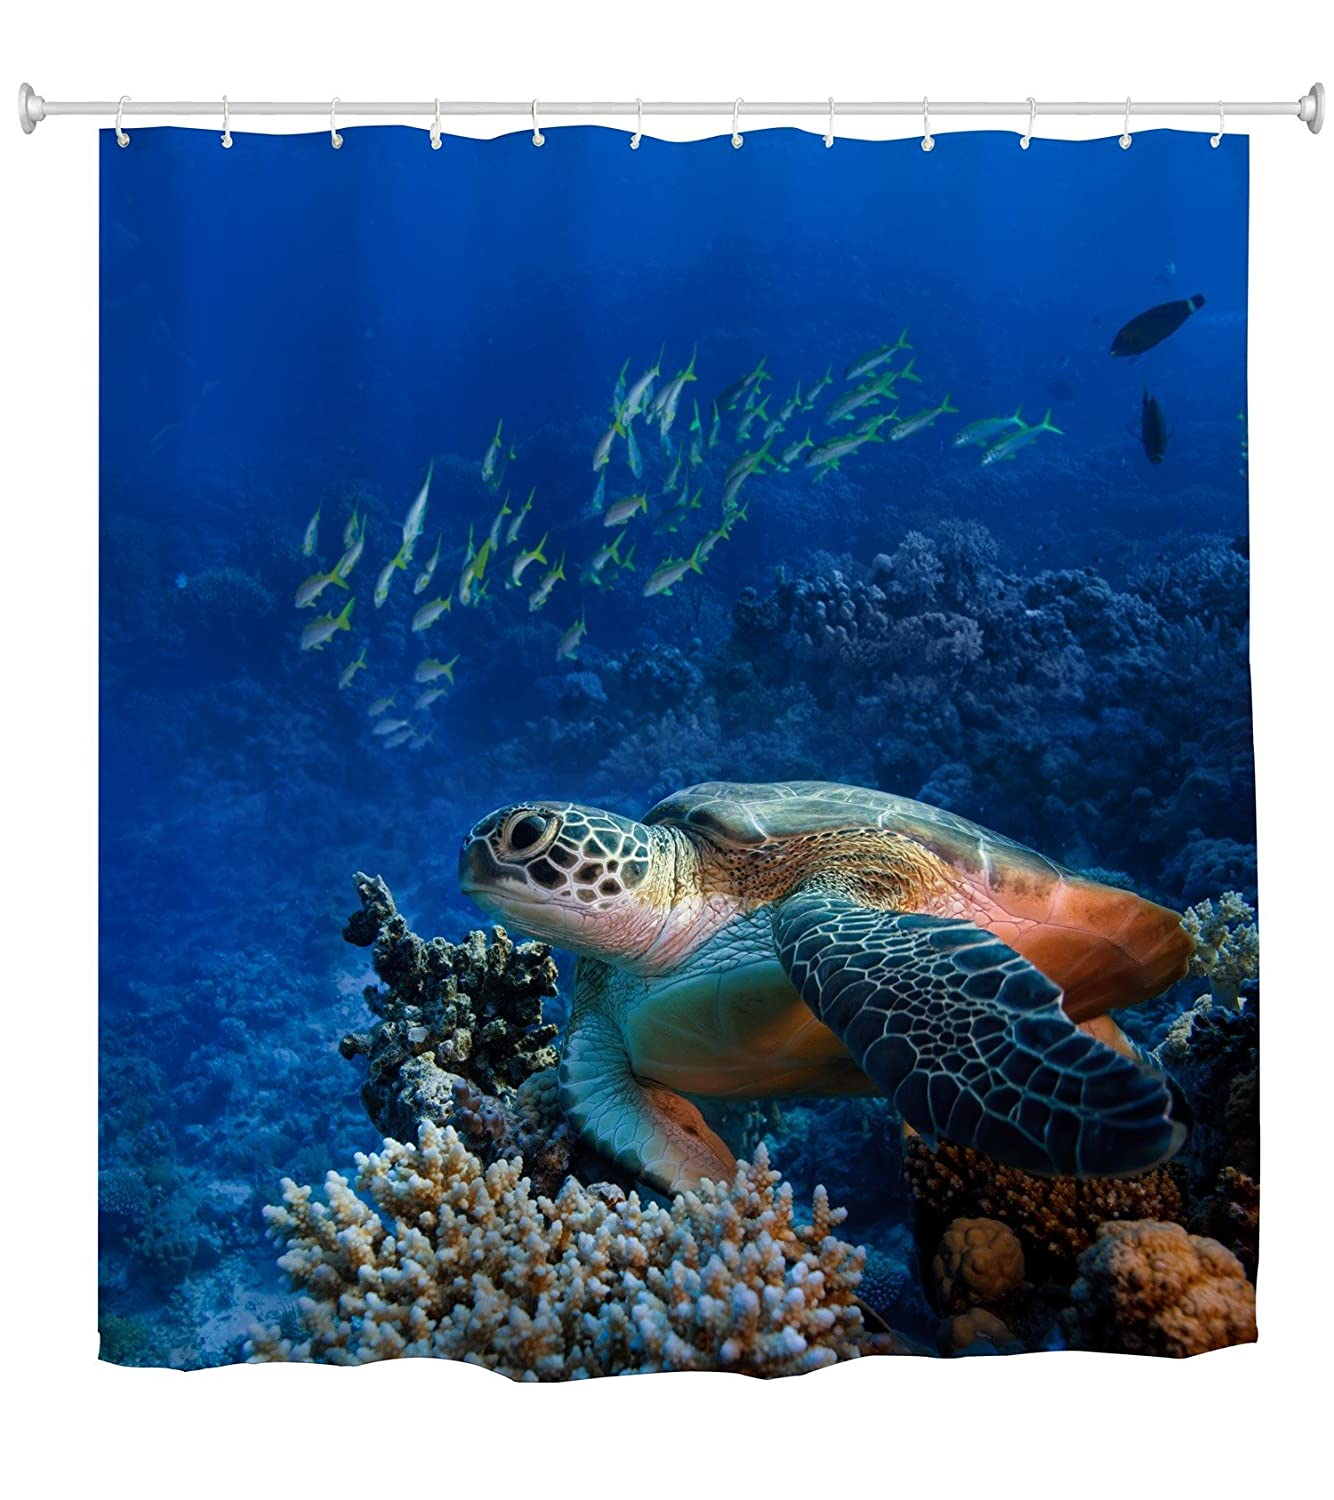 Turtle Shower Curtain Sea With Fishes And Coral Reef Underwater Ocean Set Hooks Bathroom Accessories 72 X Inch Colorful